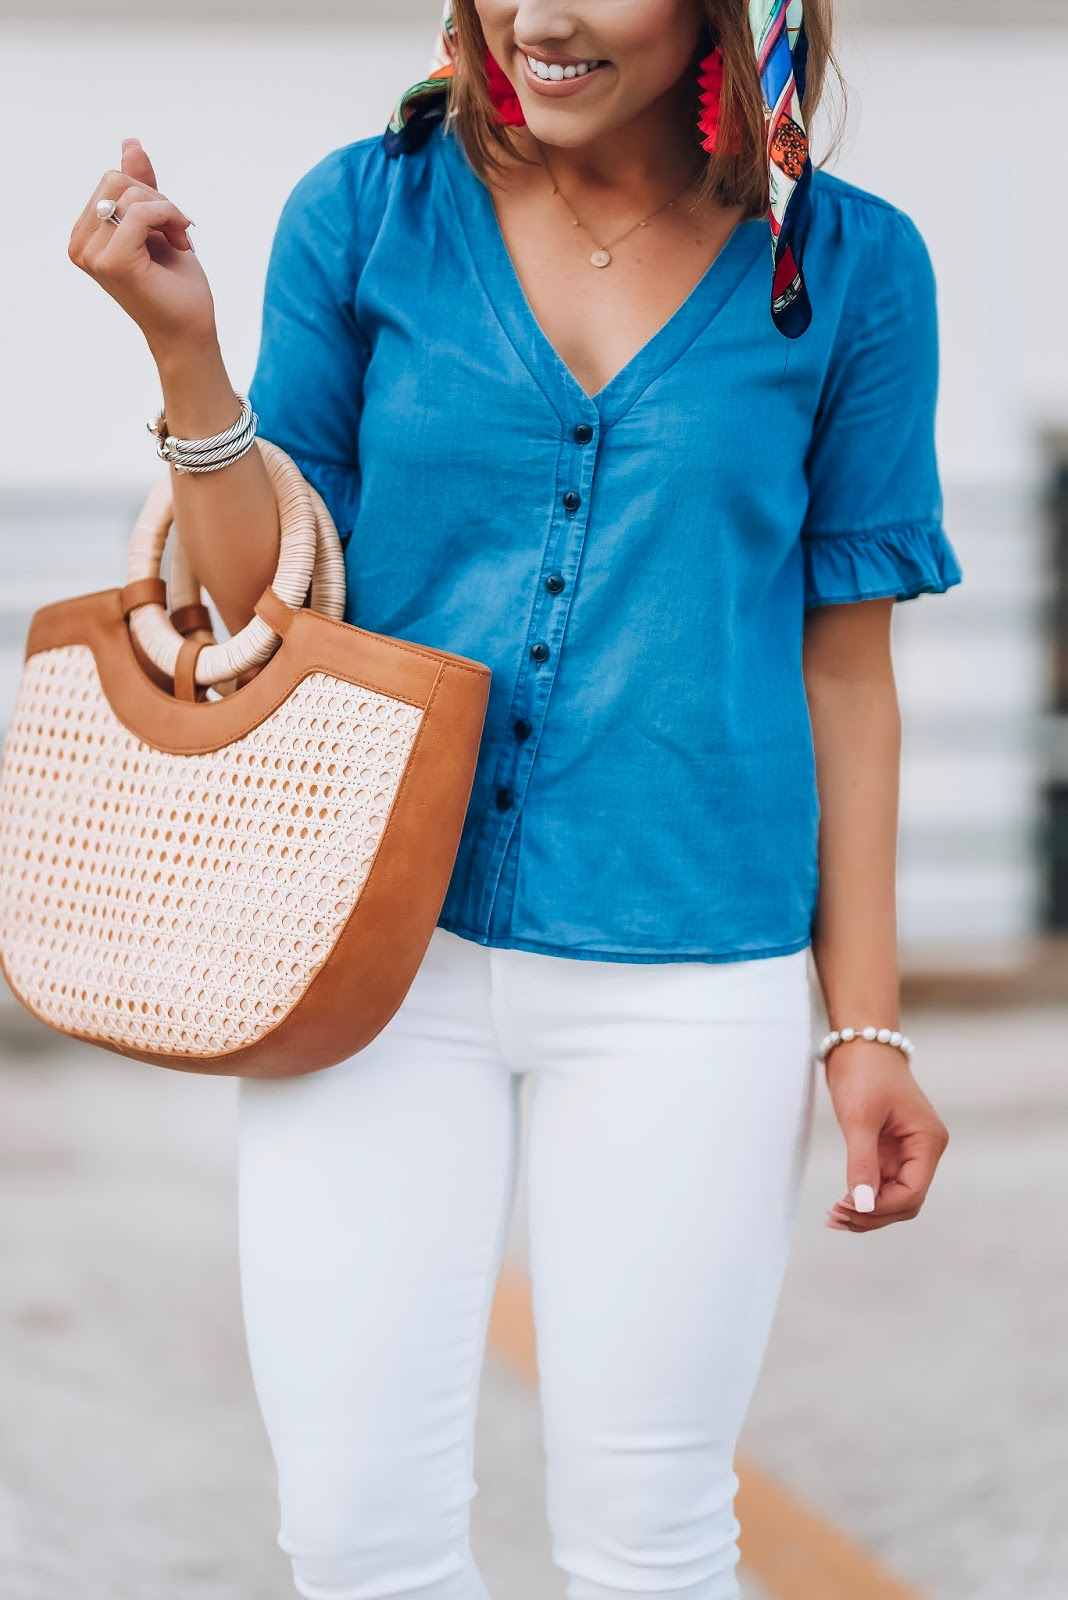 My Favorite Way to Style Chambray: Madewell Ruffle Sleeve Chambray Top, Target Straw Bag + $12 Scarf - Something Delightful Blog #springstyle #chambray #everydaystyle